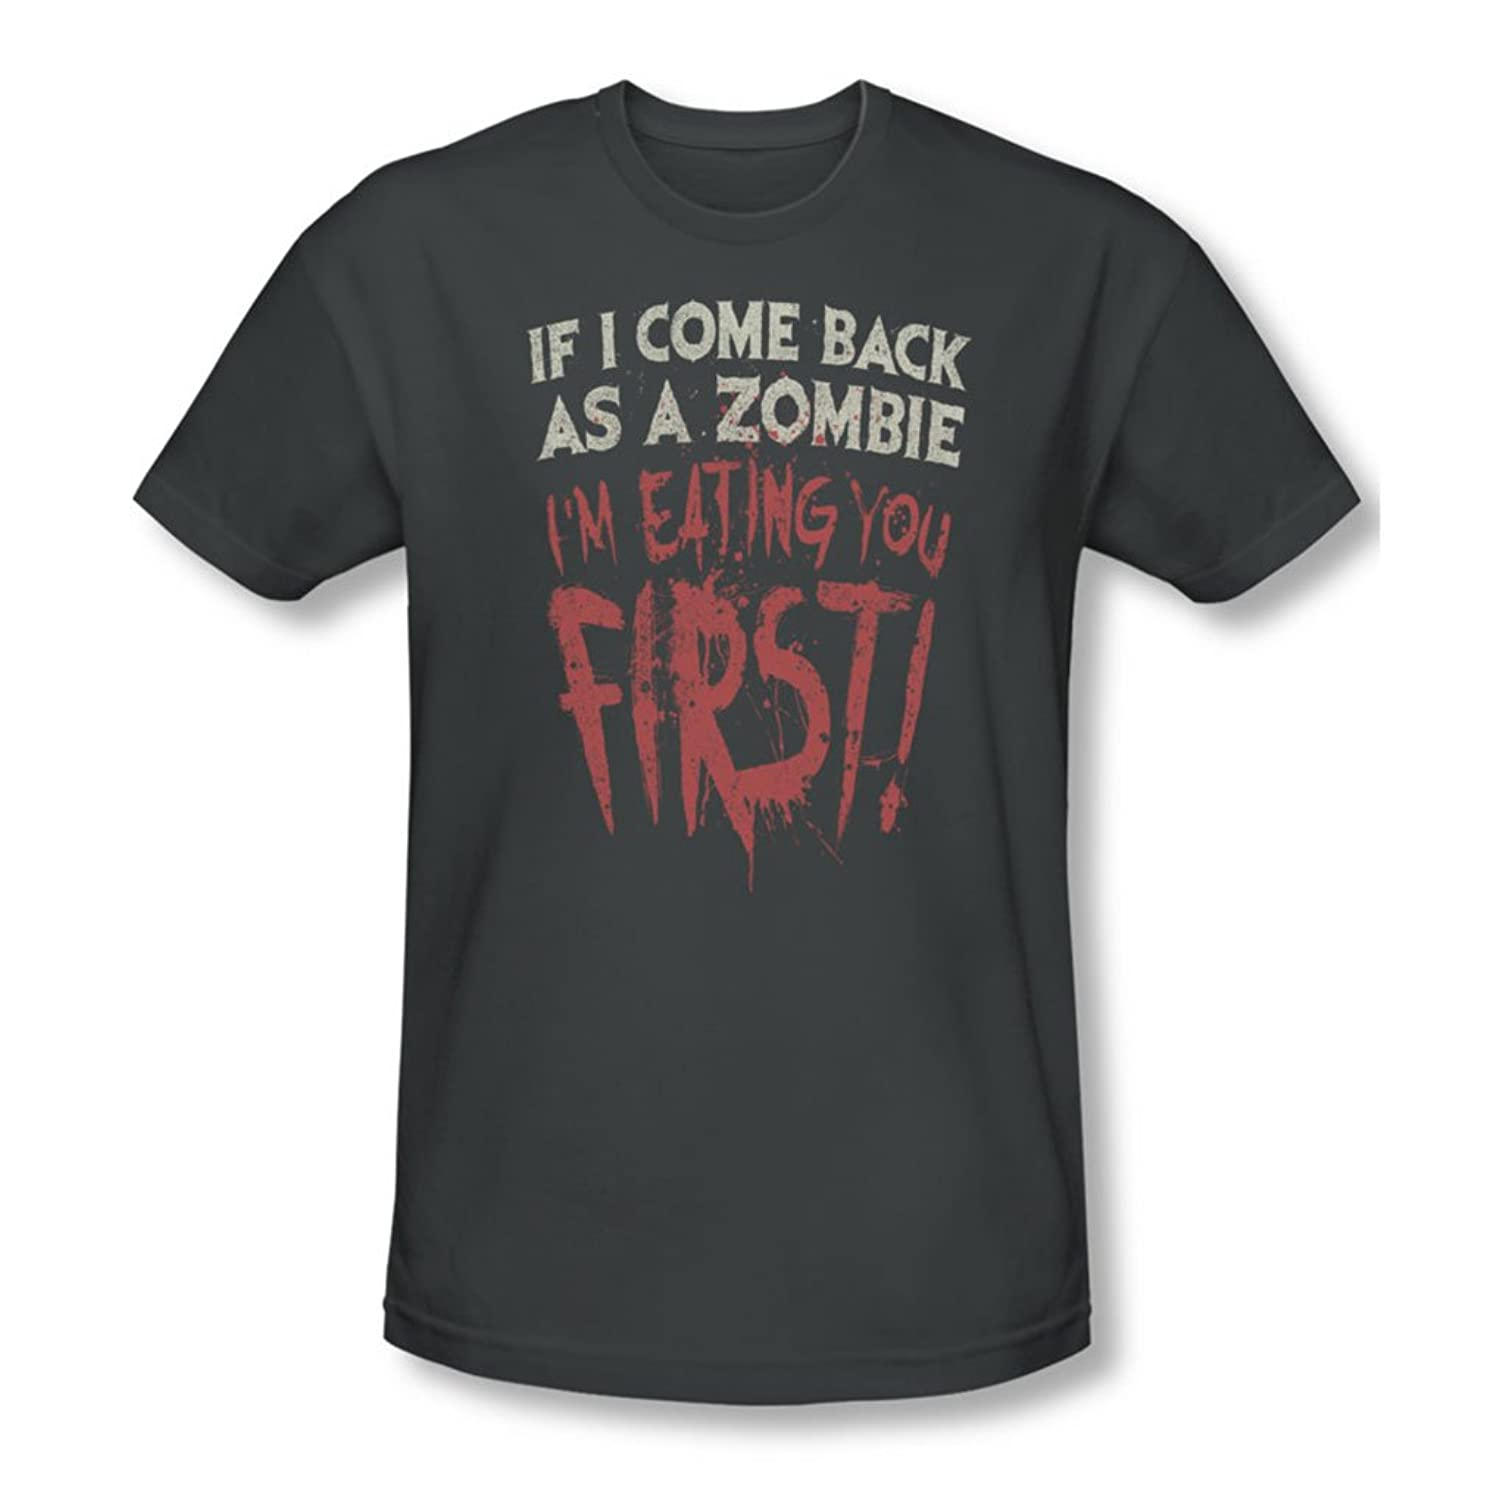 You First - Mens Slim Fit T-Shirt In Charcoal